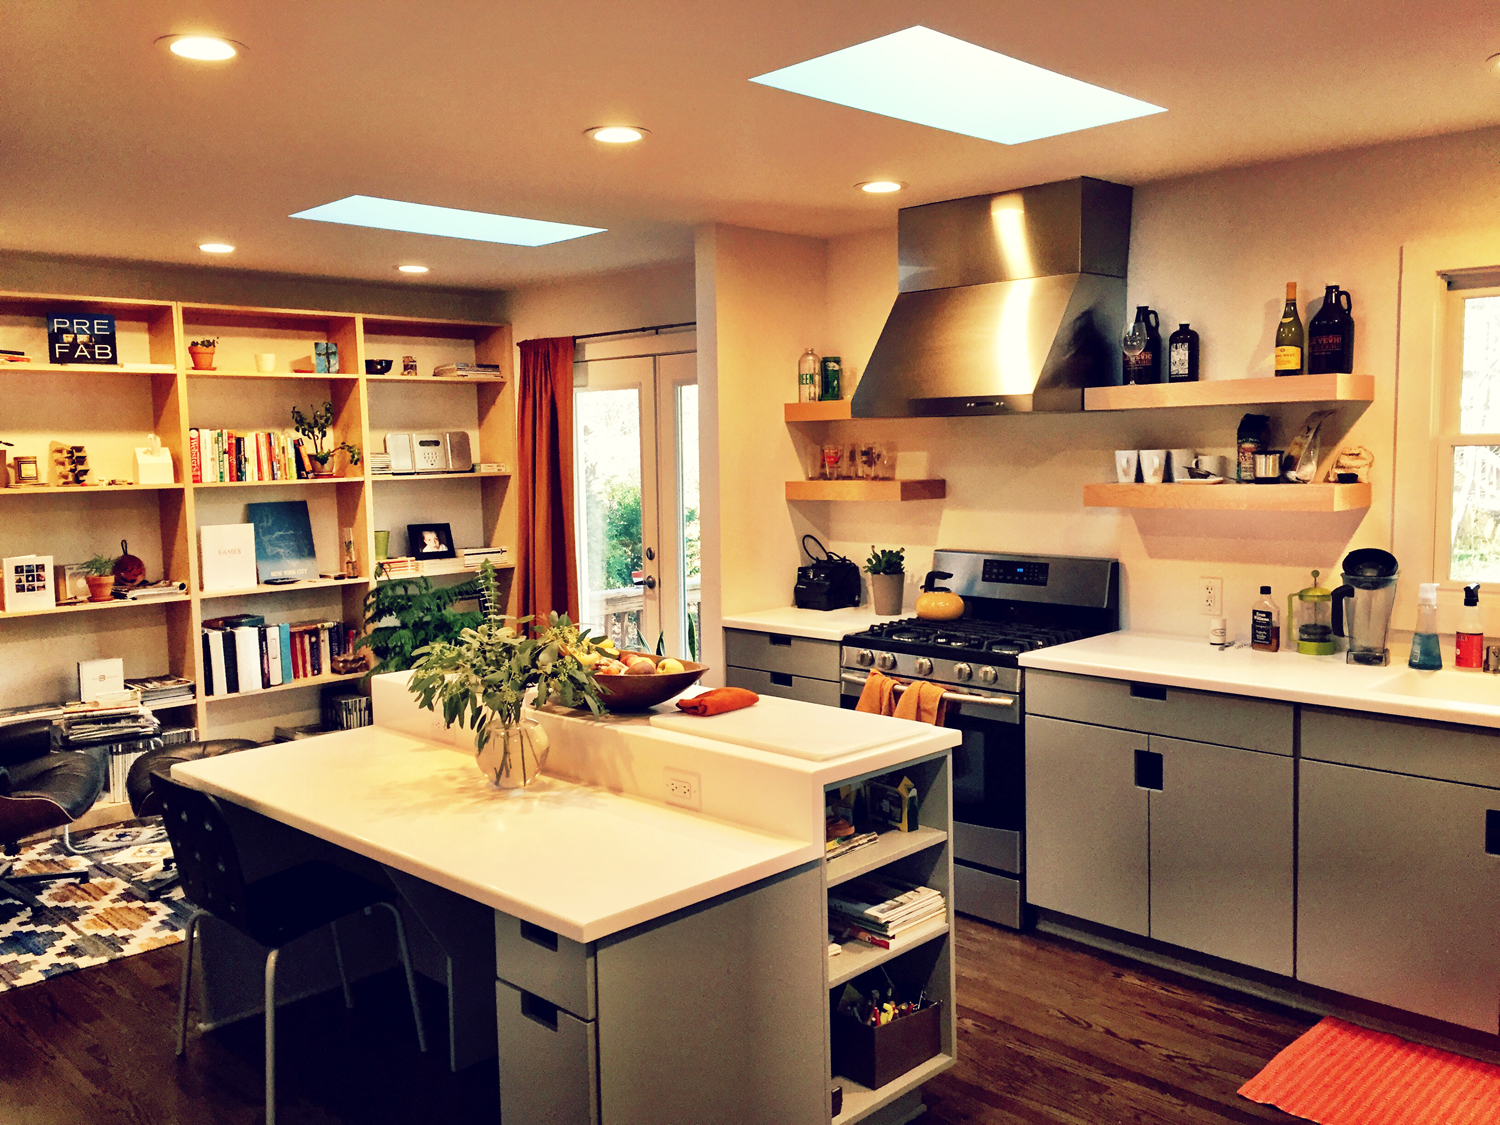 The Kitchen and Library